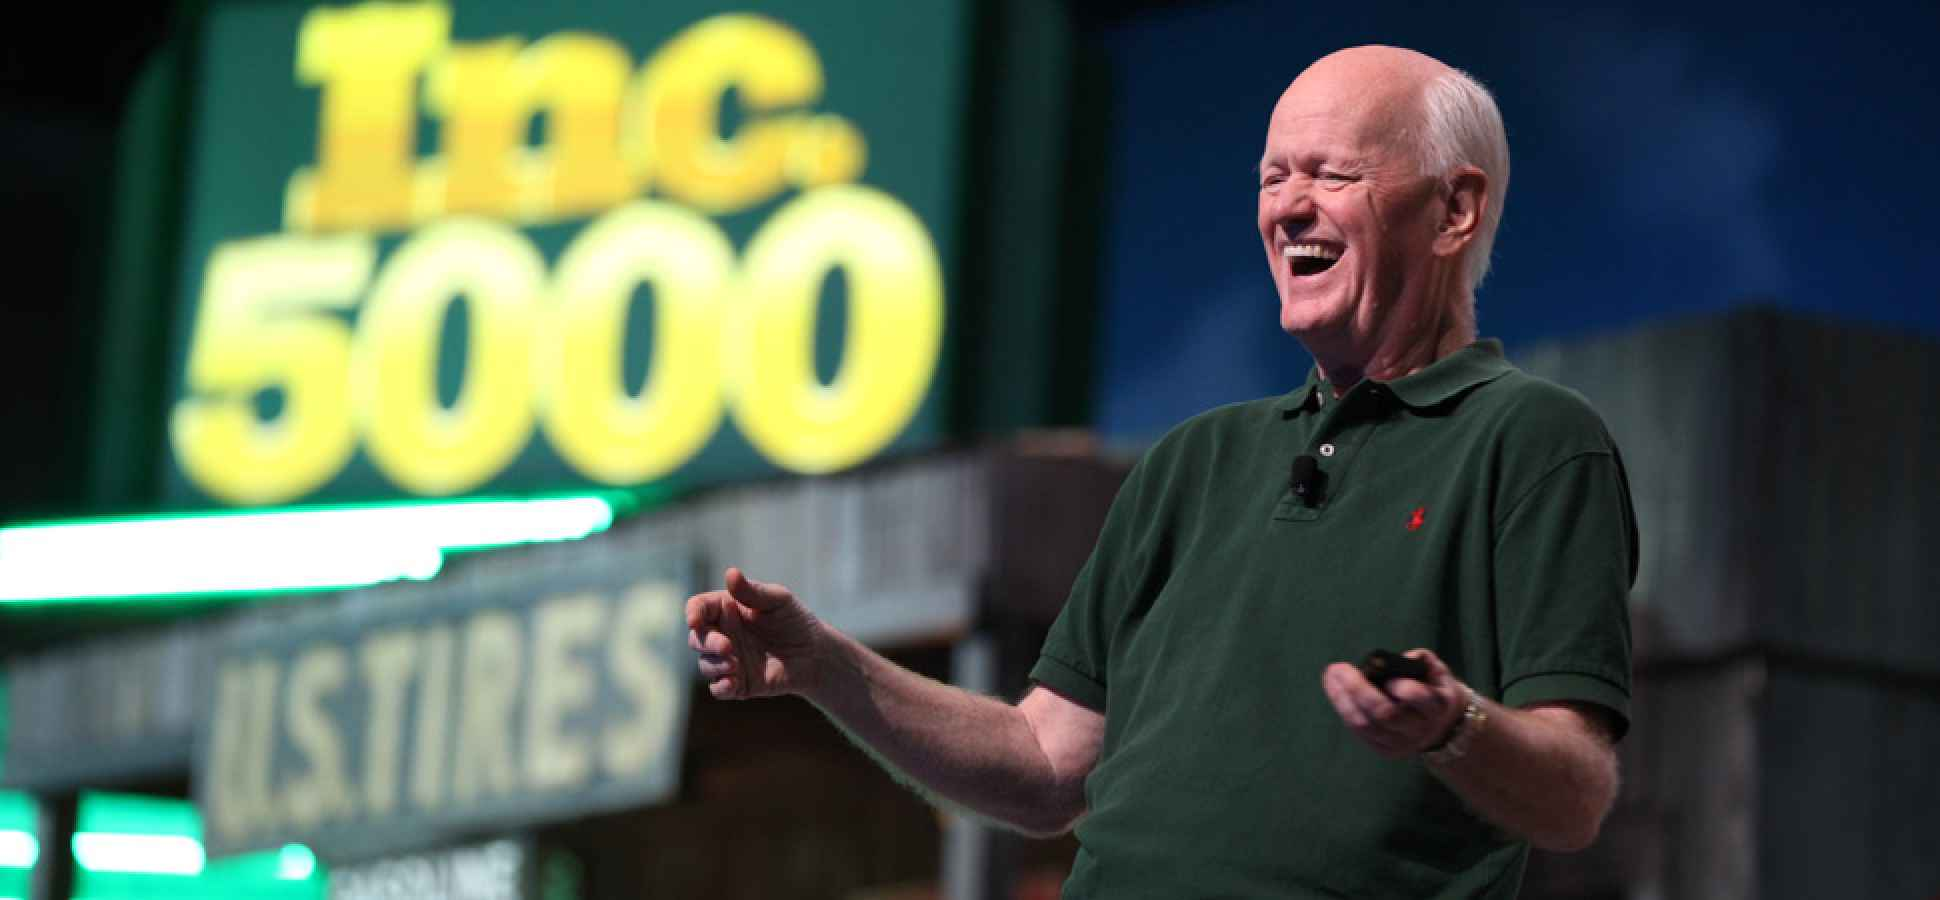 Marshall Goldsmith: Get Better at Anything in 2 Minutes a Day